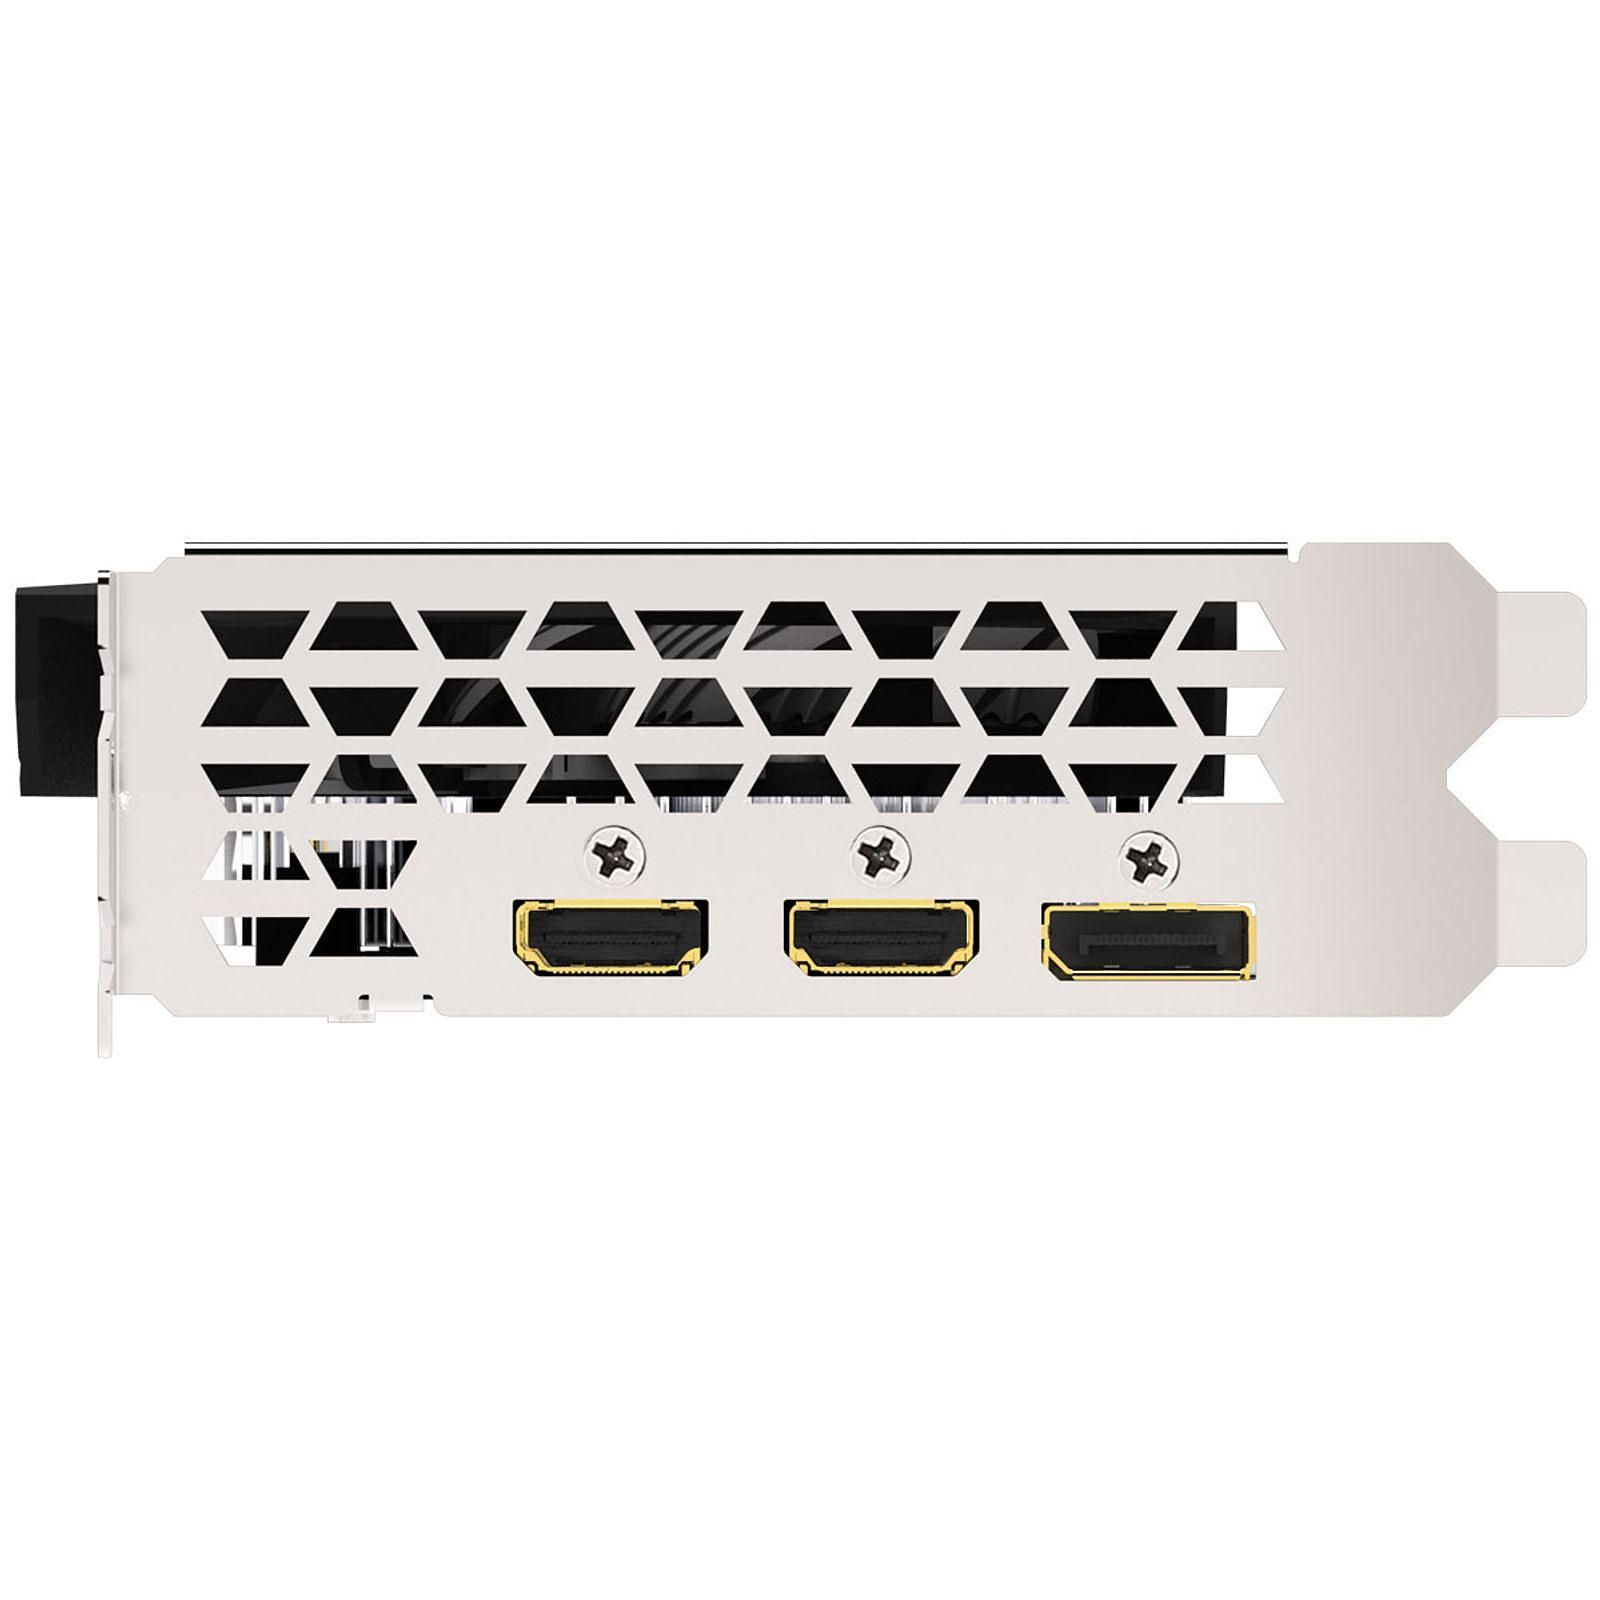 Carte graphique Gigabyte GeForce 1650 MINI ITX OC 4Ggo DDR5 PCIe 3.0, informatique reunion, informatique ile de la Réunion 974